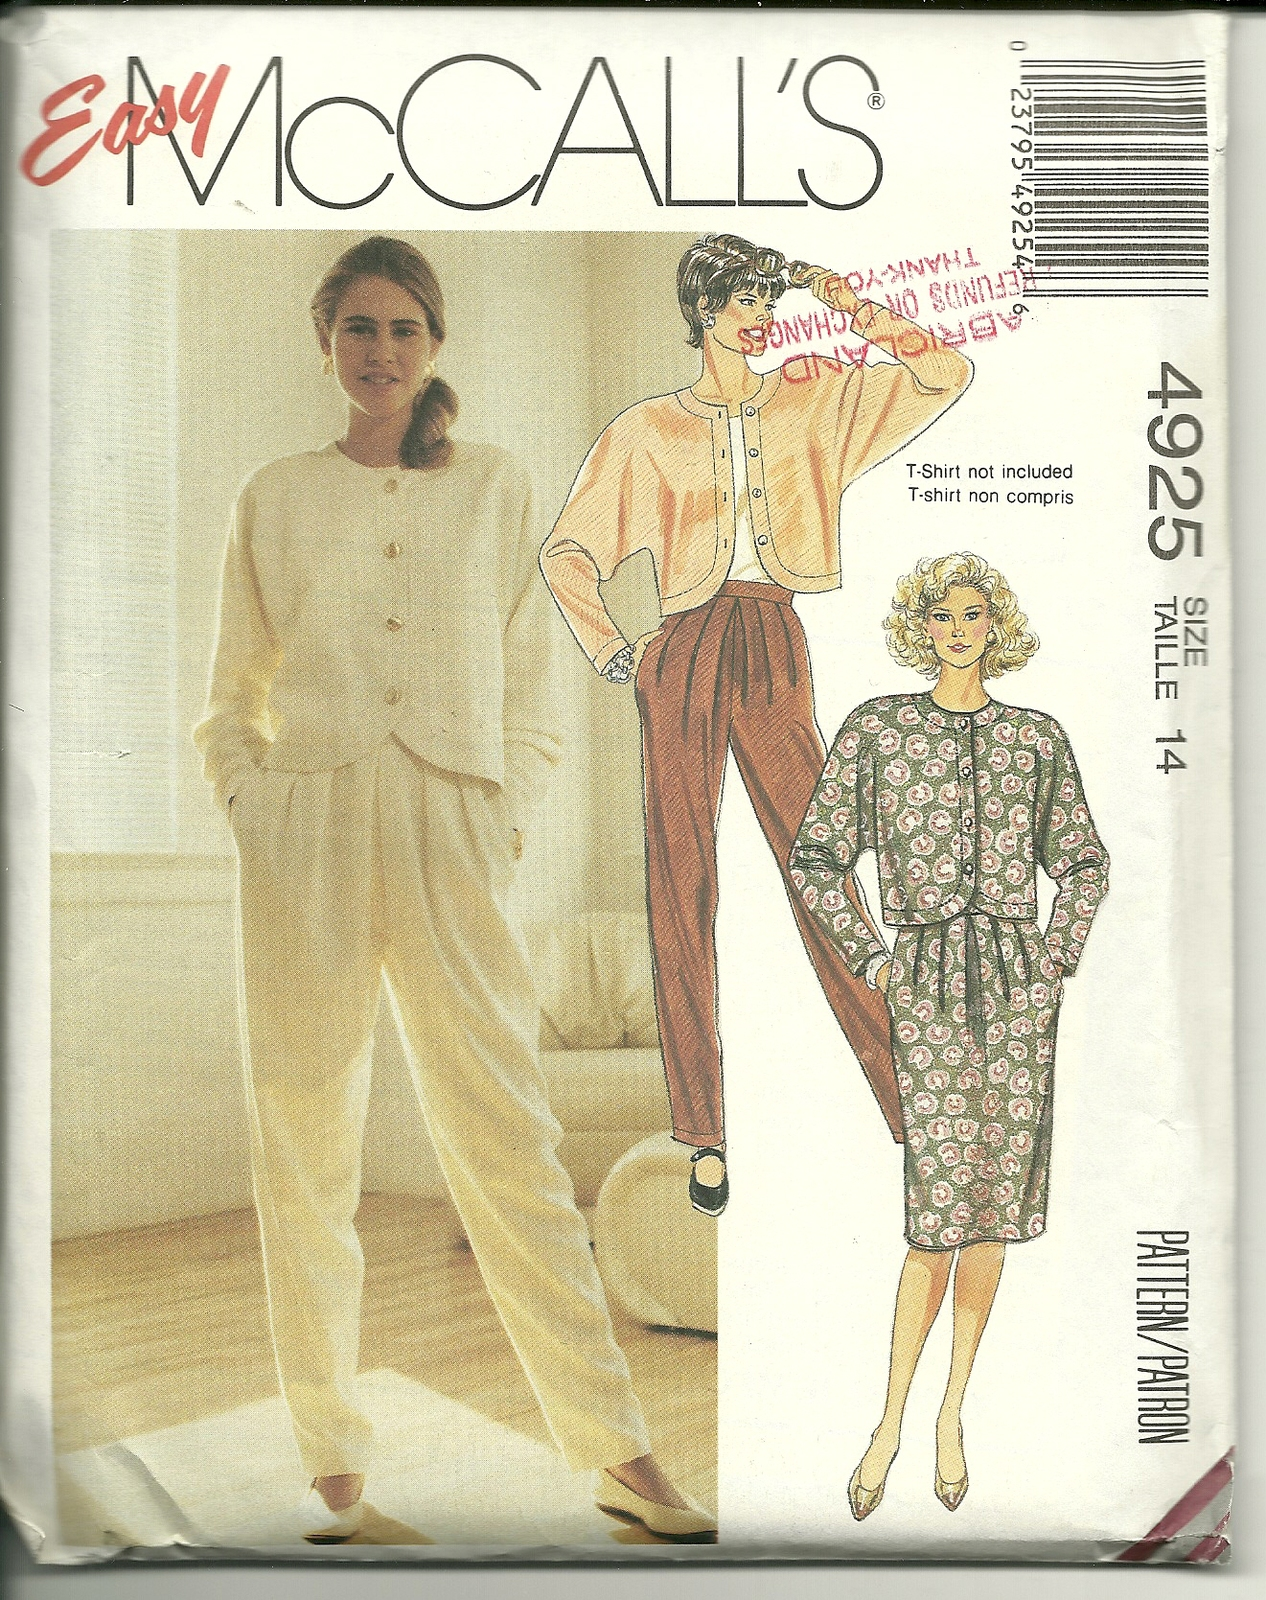 mccall women Shop ebay for great deals on mccall's women reenactment & theater costumes patterns you'll find new or used products in mccall's women reenactment & theater costumes patterns on ebay.